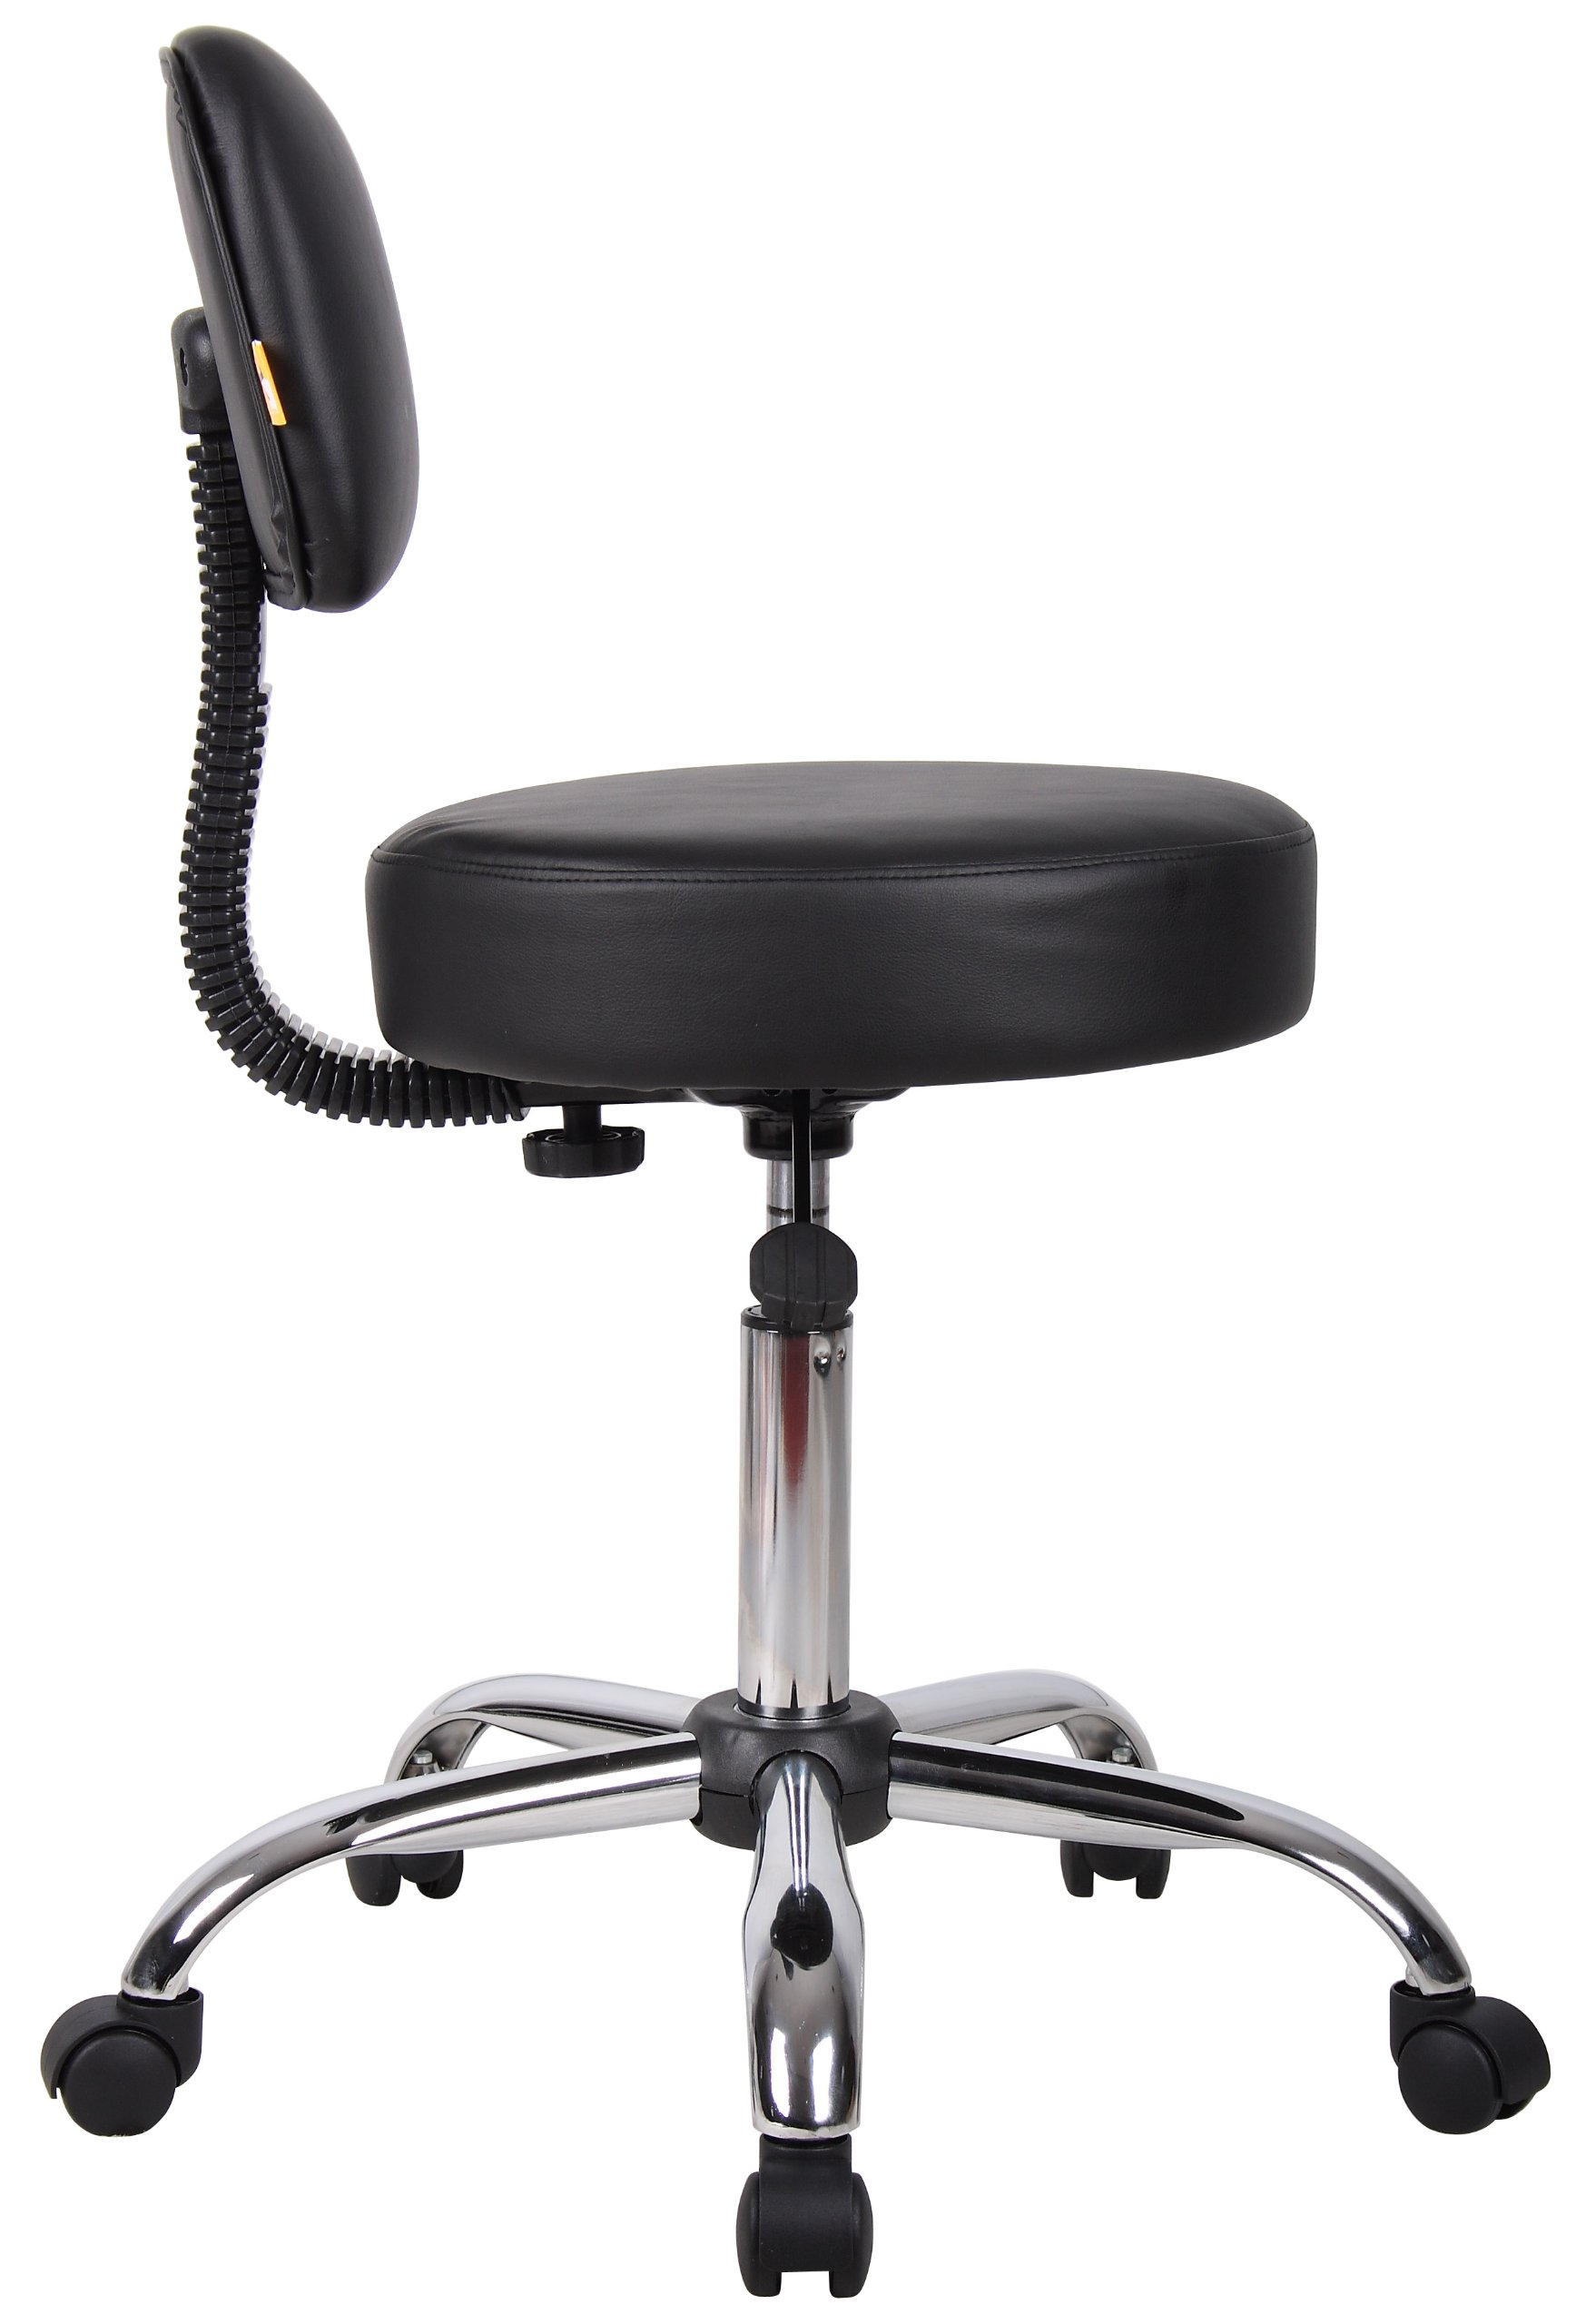 Boss Office Products B245-BK Be Well Medical Spa Stool with Back in Black by Boss Office Products (Image #5)